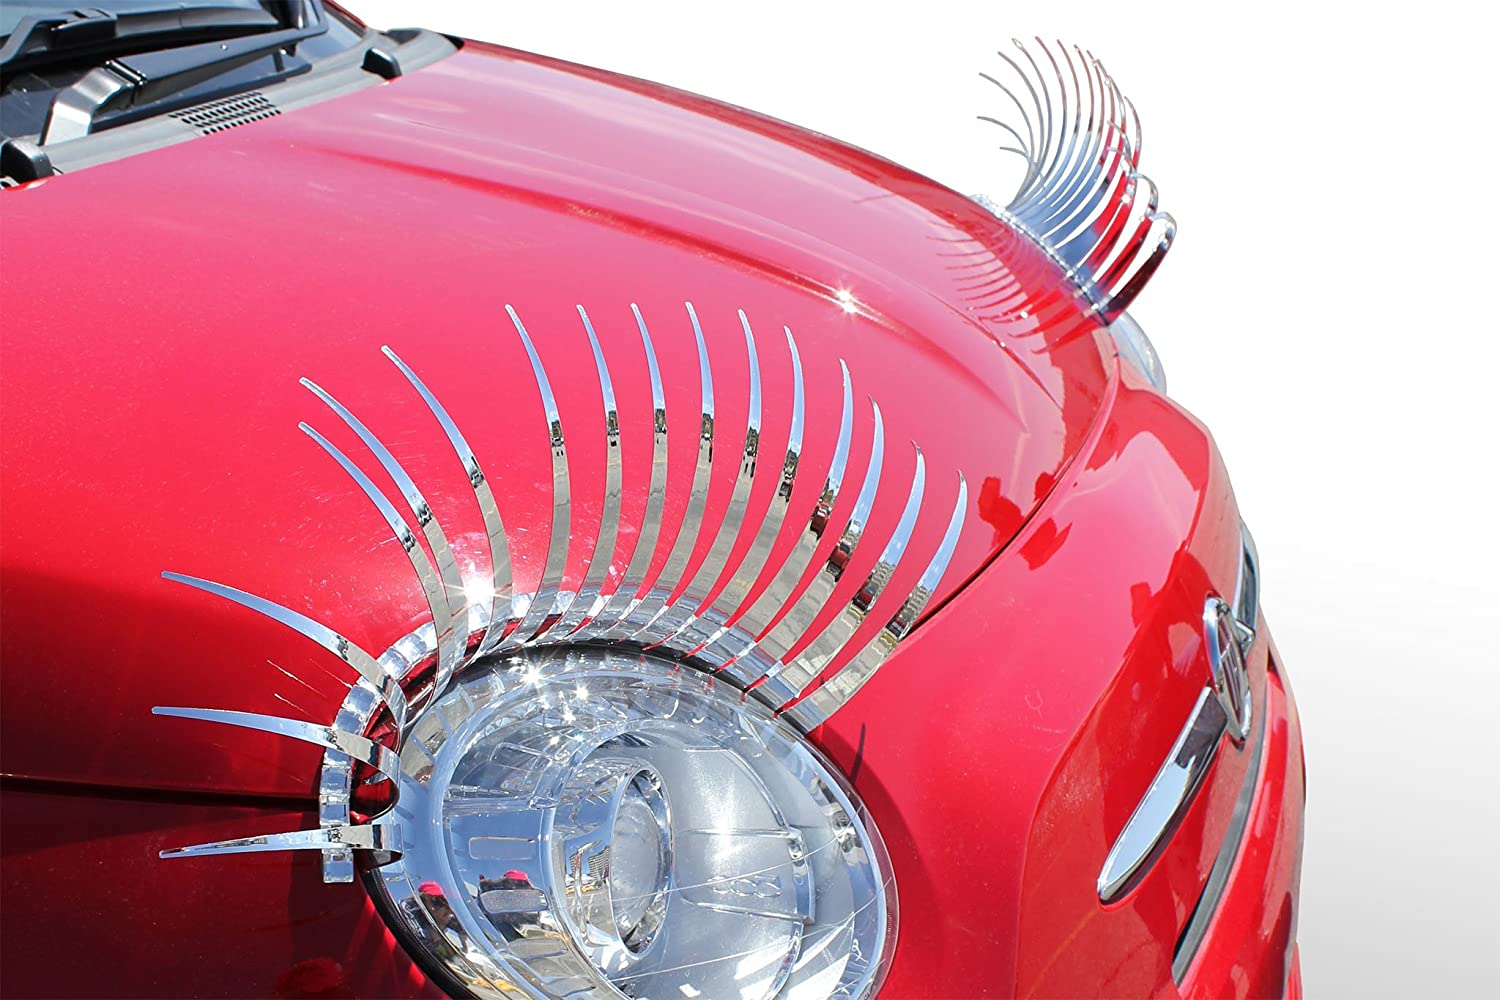 Girly Car Accessory Ladies Fashion Diva Bling Electroplated Mirror Finish CHROME CarLashes SILVER Car Eyelashes Special Edition Miles of Smiles Turbo Style Products 4350289528